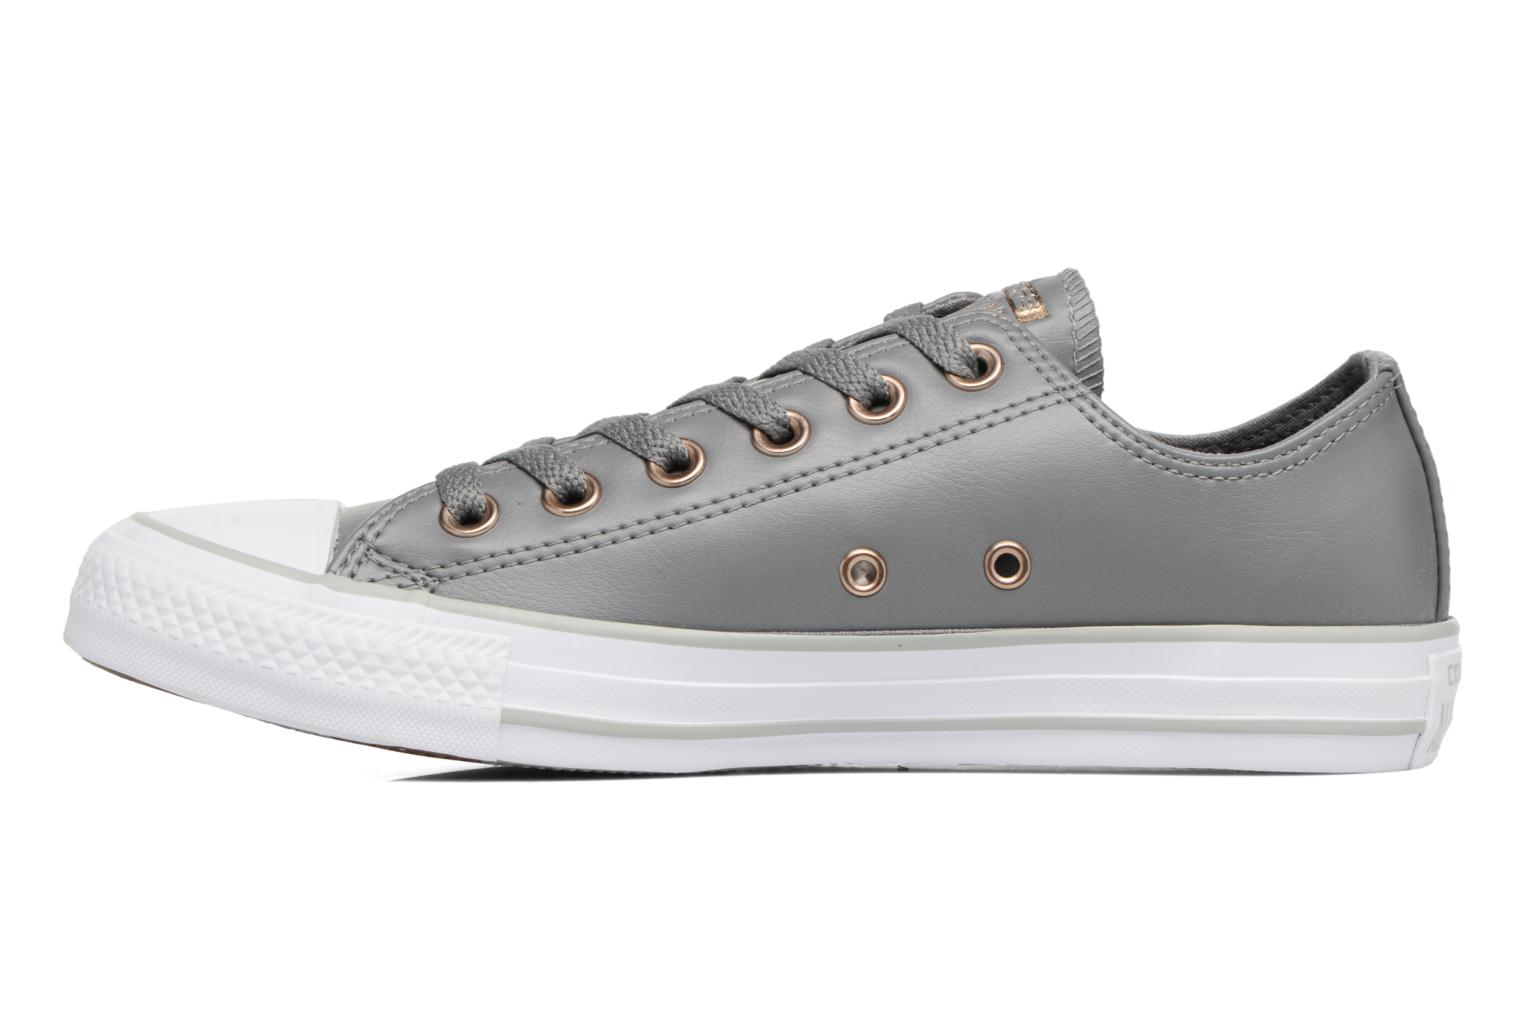 Pale Putty/White/Mouse Converse Chuck Taylor All Star Craft SL Ox (Beige)